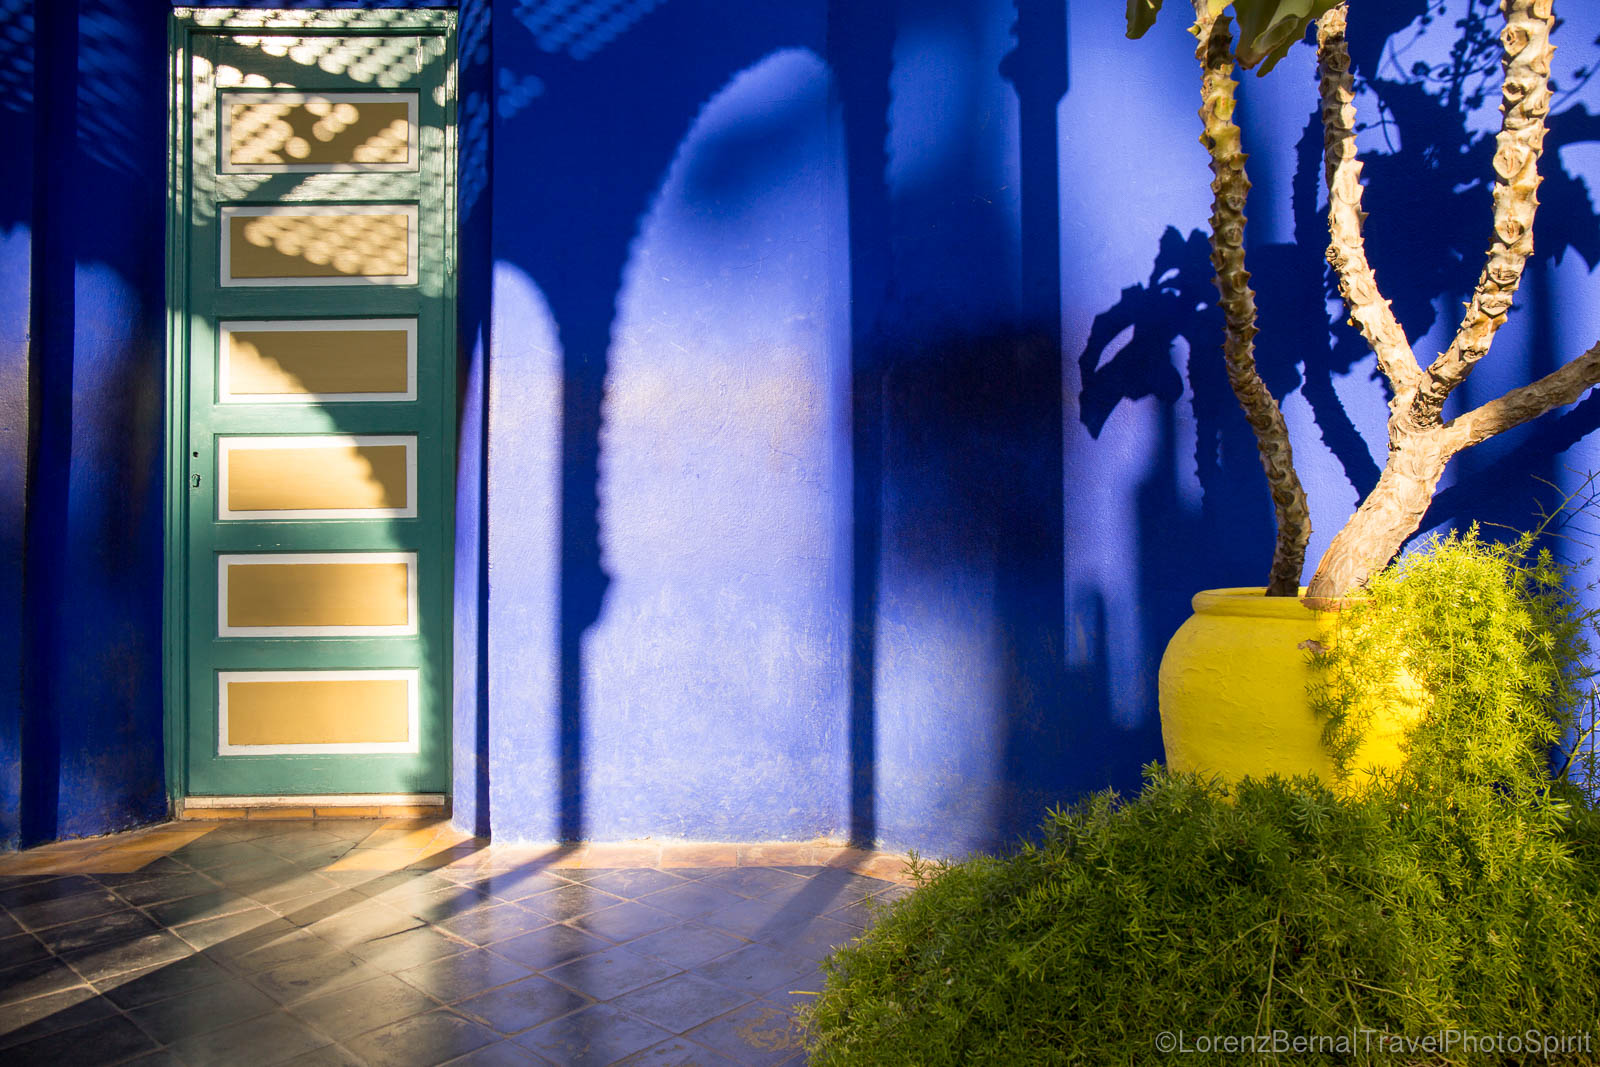 Curves, colors and shadows in the Majorelle Garden, the Yves Saint Laurent garden in Marrakesh.